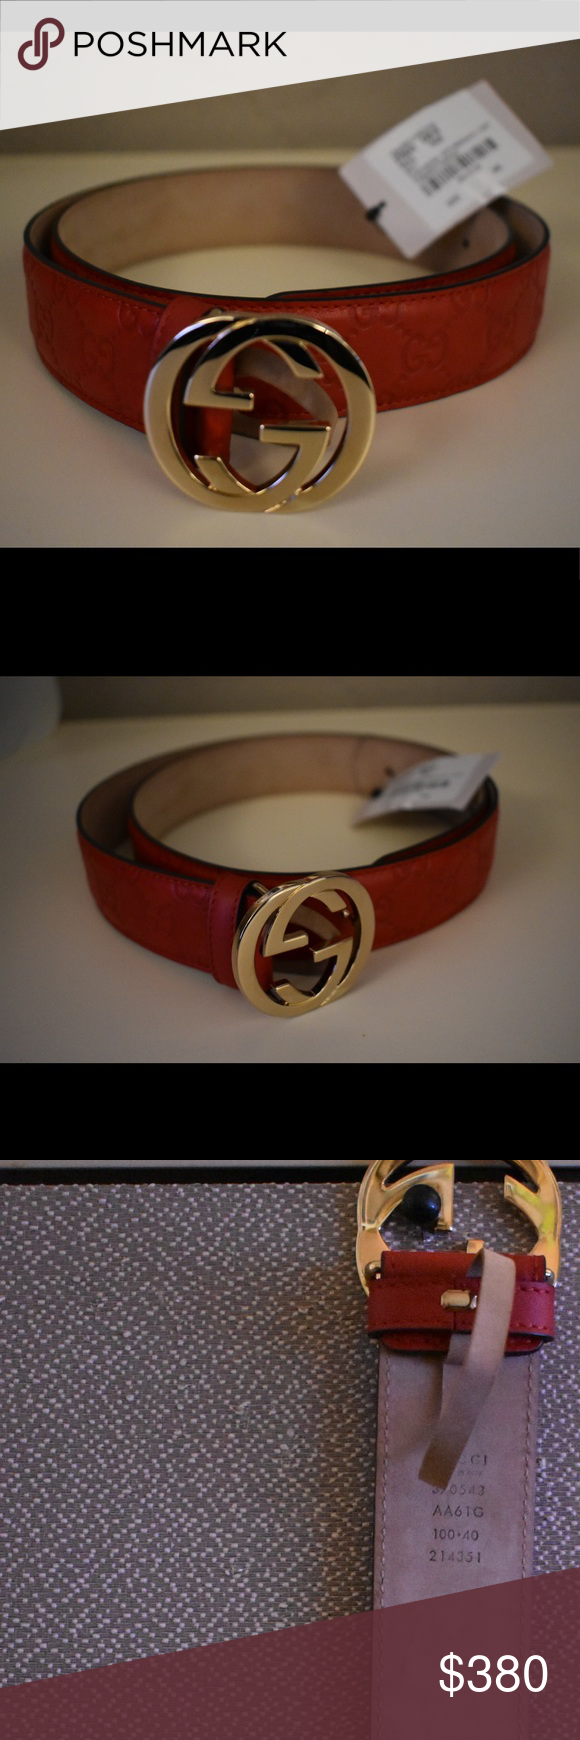 8ce29177579 Authentic unisex Gucci belt with tags Brand new authentic unisex Gucci belt  with tags